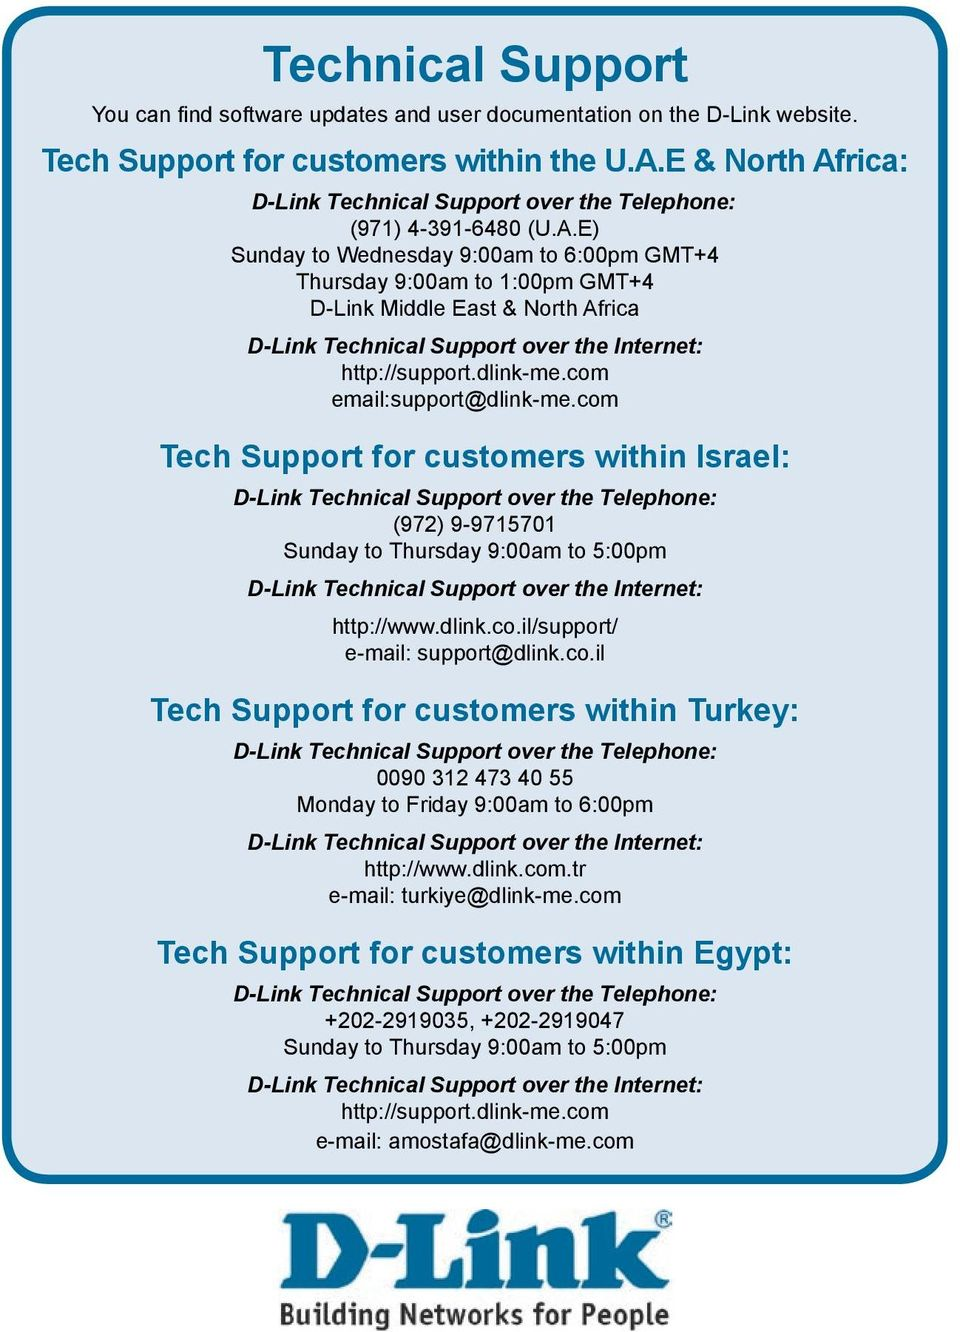 com email:support@dlink-me.com Tech Support for customers within Israel: (972) 9-9715701 Sunday to Thursday 9:00am to 5:00pm http://www.dlink.co.il/support/ e-mail: support@dlink.co.il Tech Support for customers within Turkey: 0090 312 473 40 55 Monday to Friday 9:00am to 6:00pm http://www.